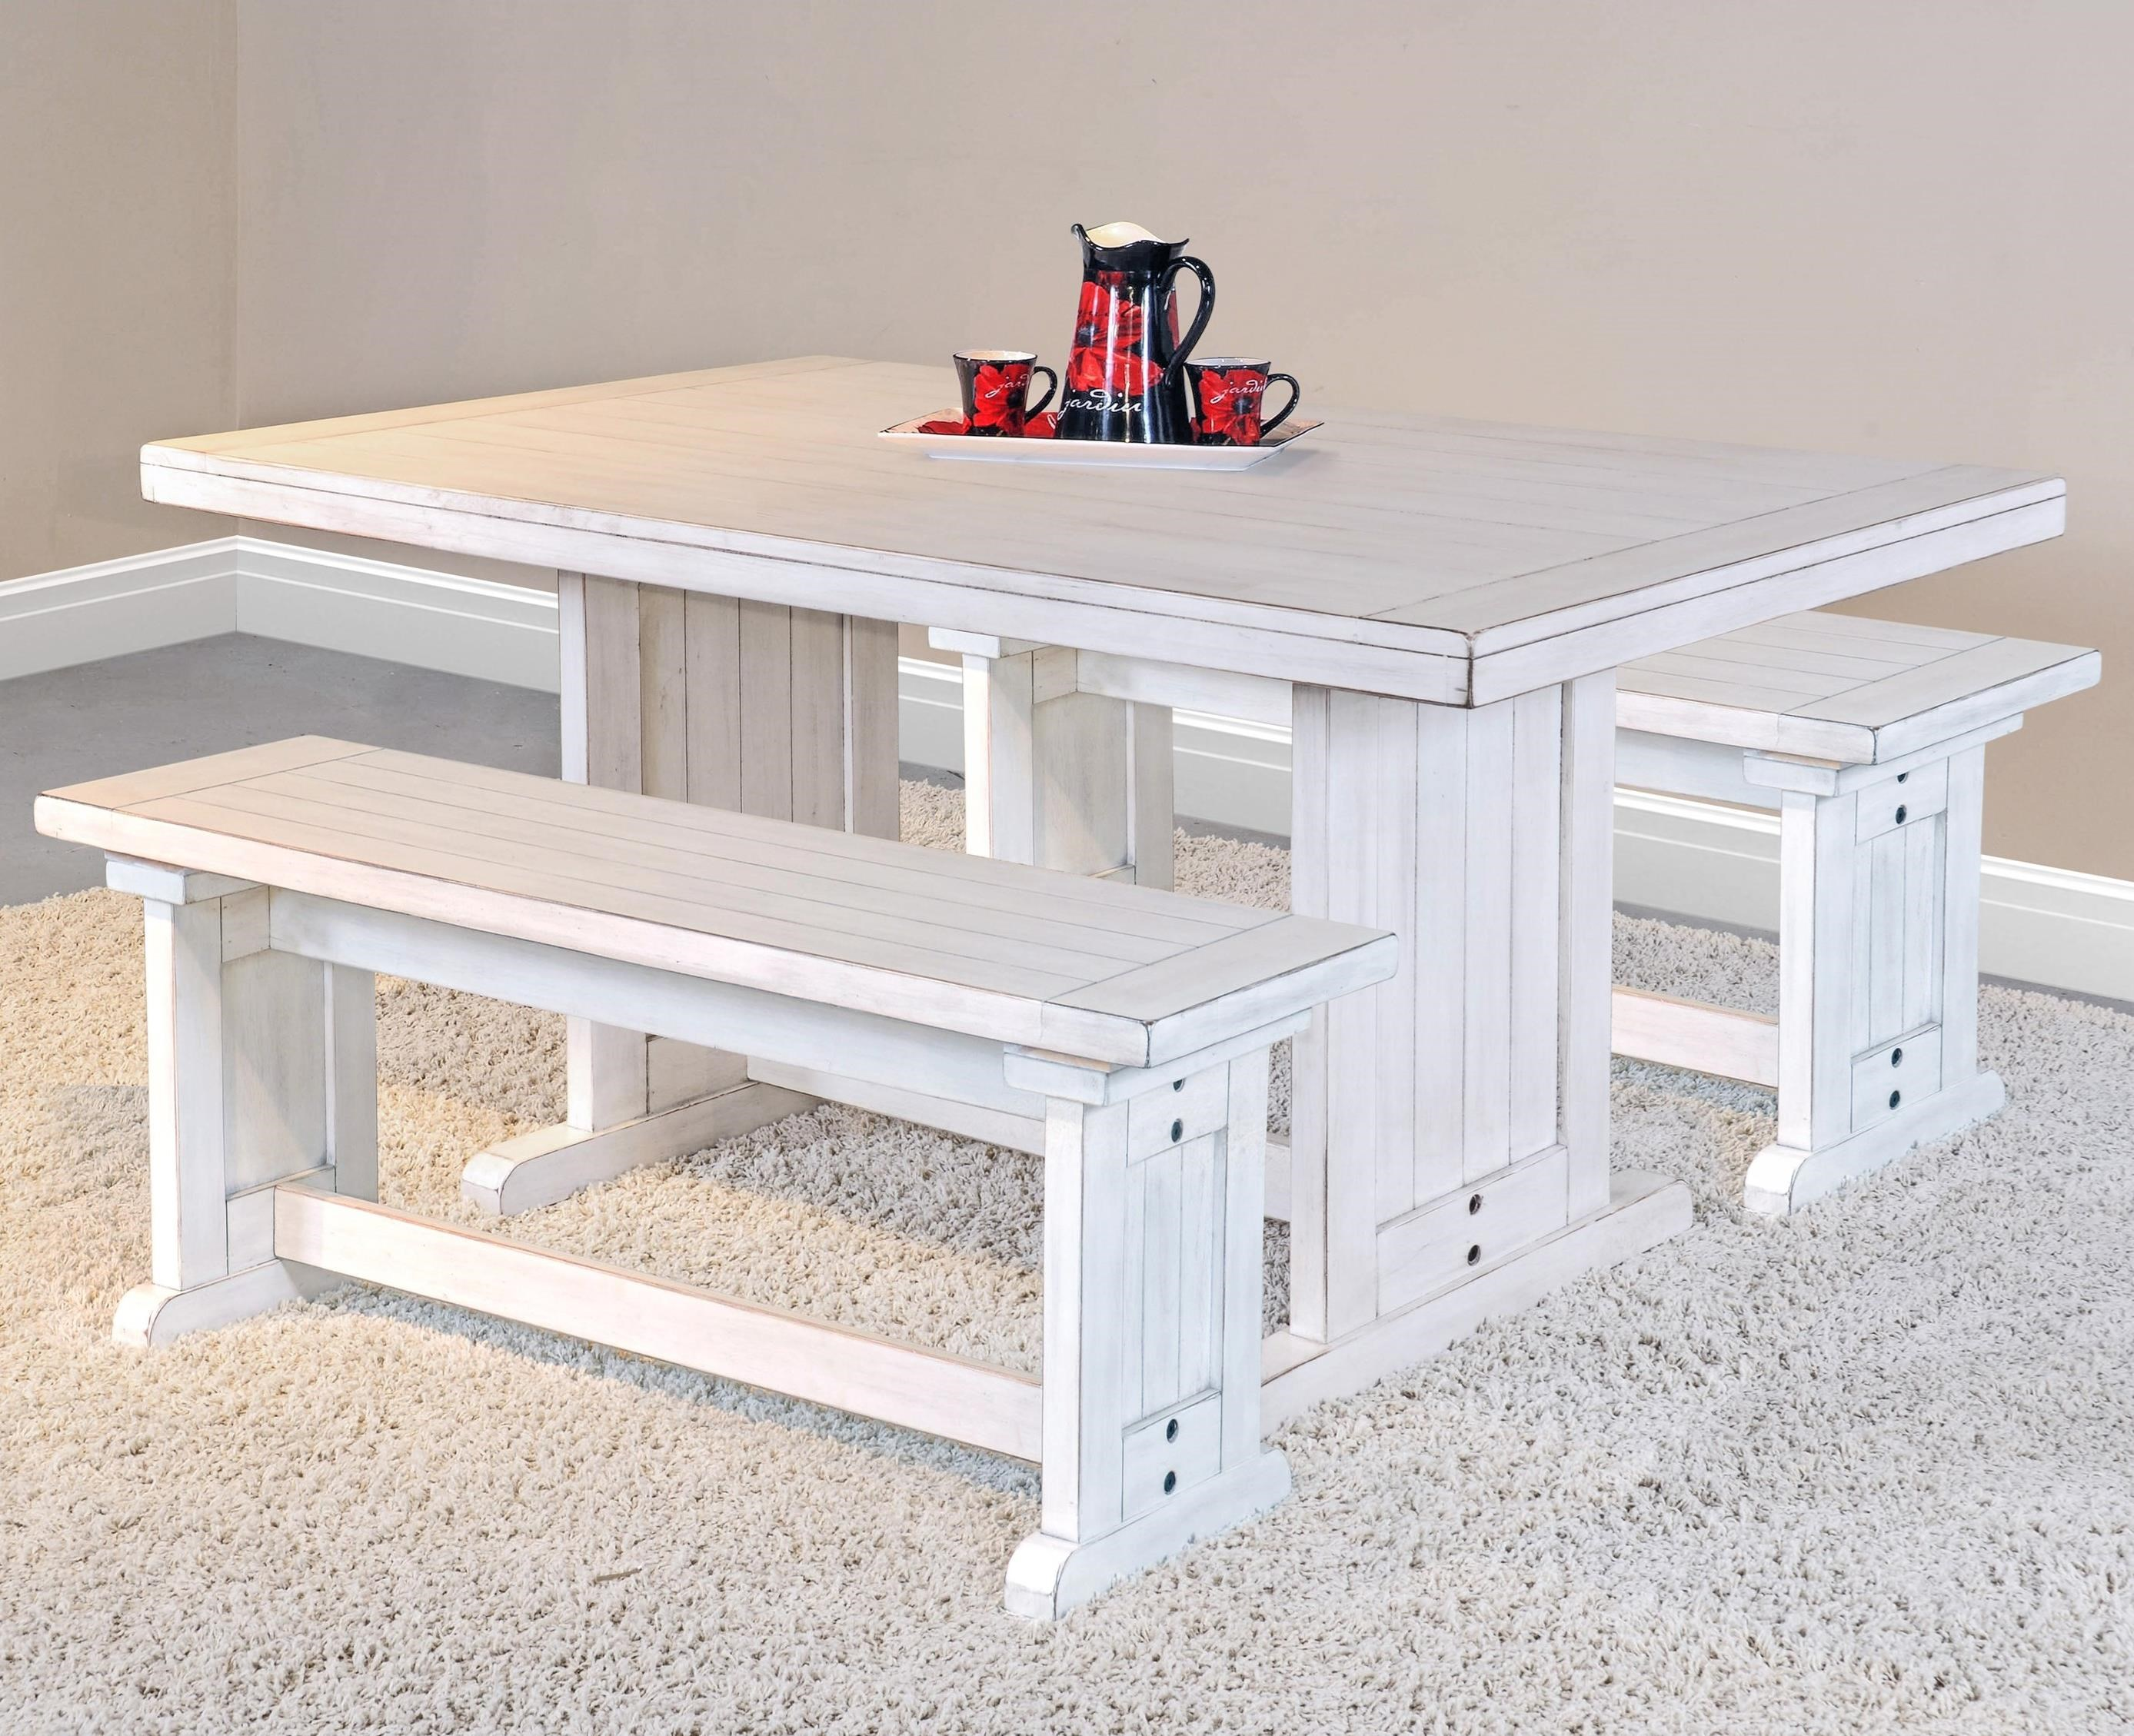 Bayside Table with 2 Benches by Sunny Designs at Sparks HomeStore